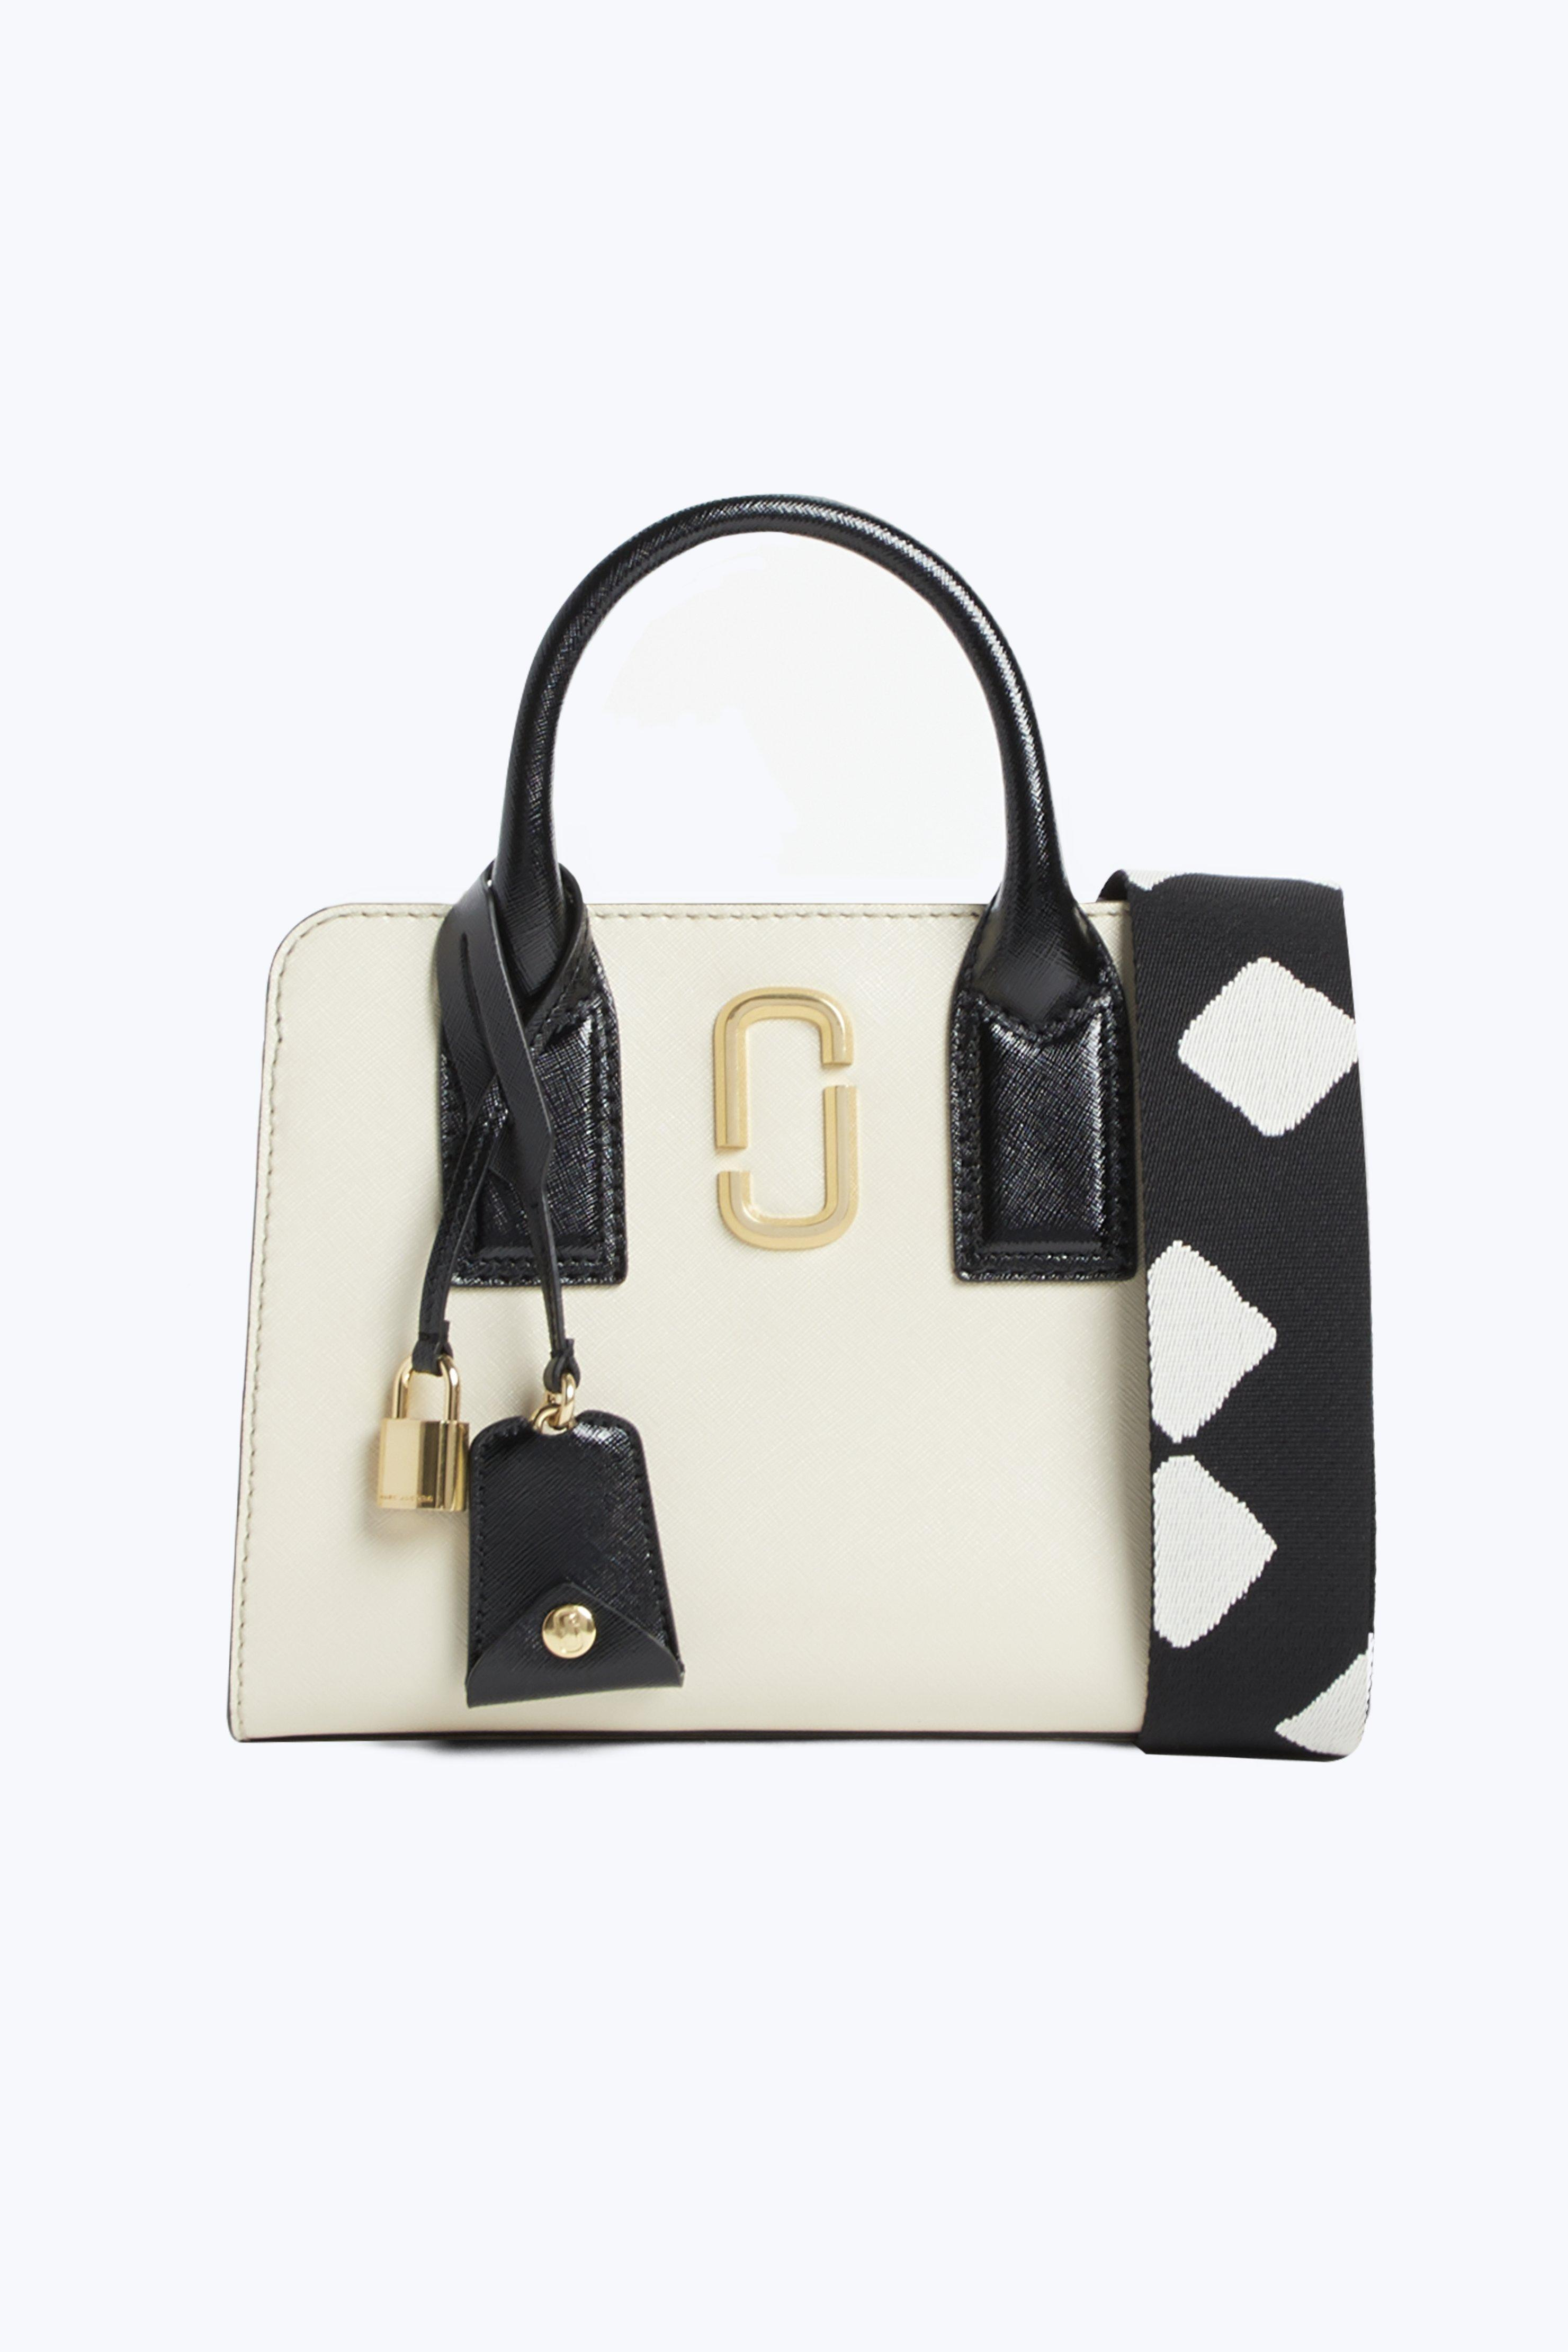 Marc Jacobs Little Big Shot Bag in White - Lyst 2eef092489a23